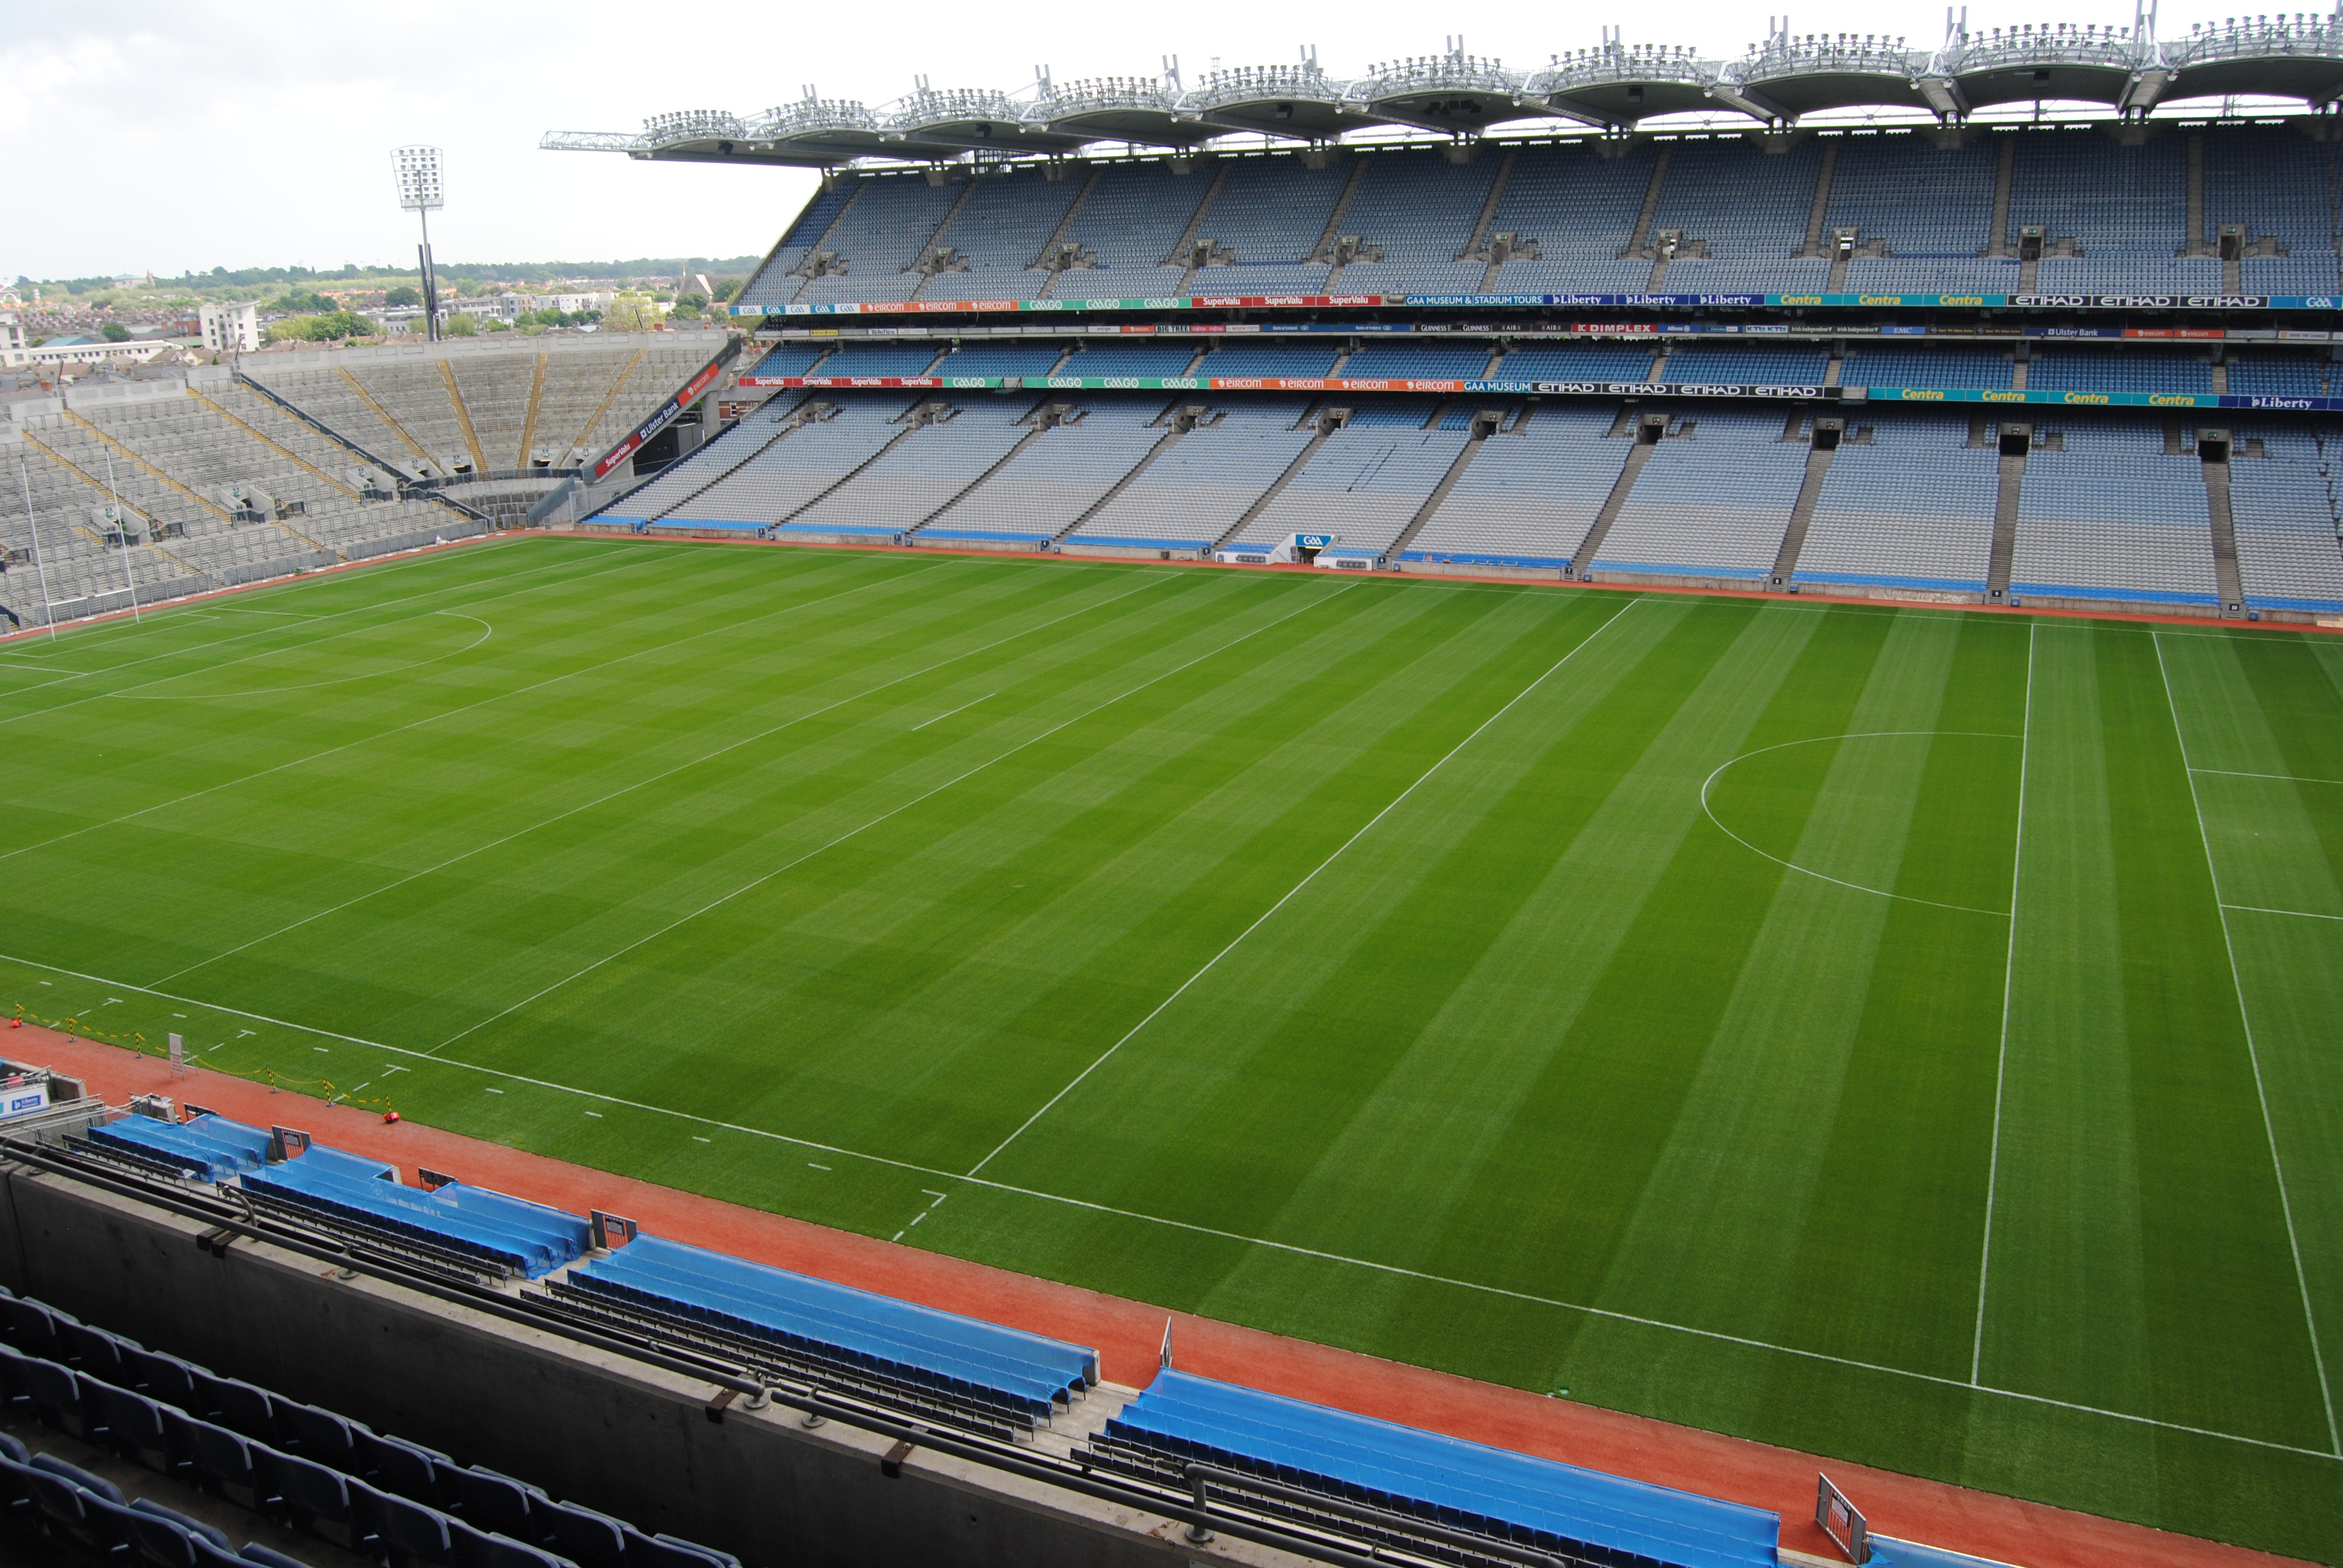 The view of Croke Park from the nosebleed seats!